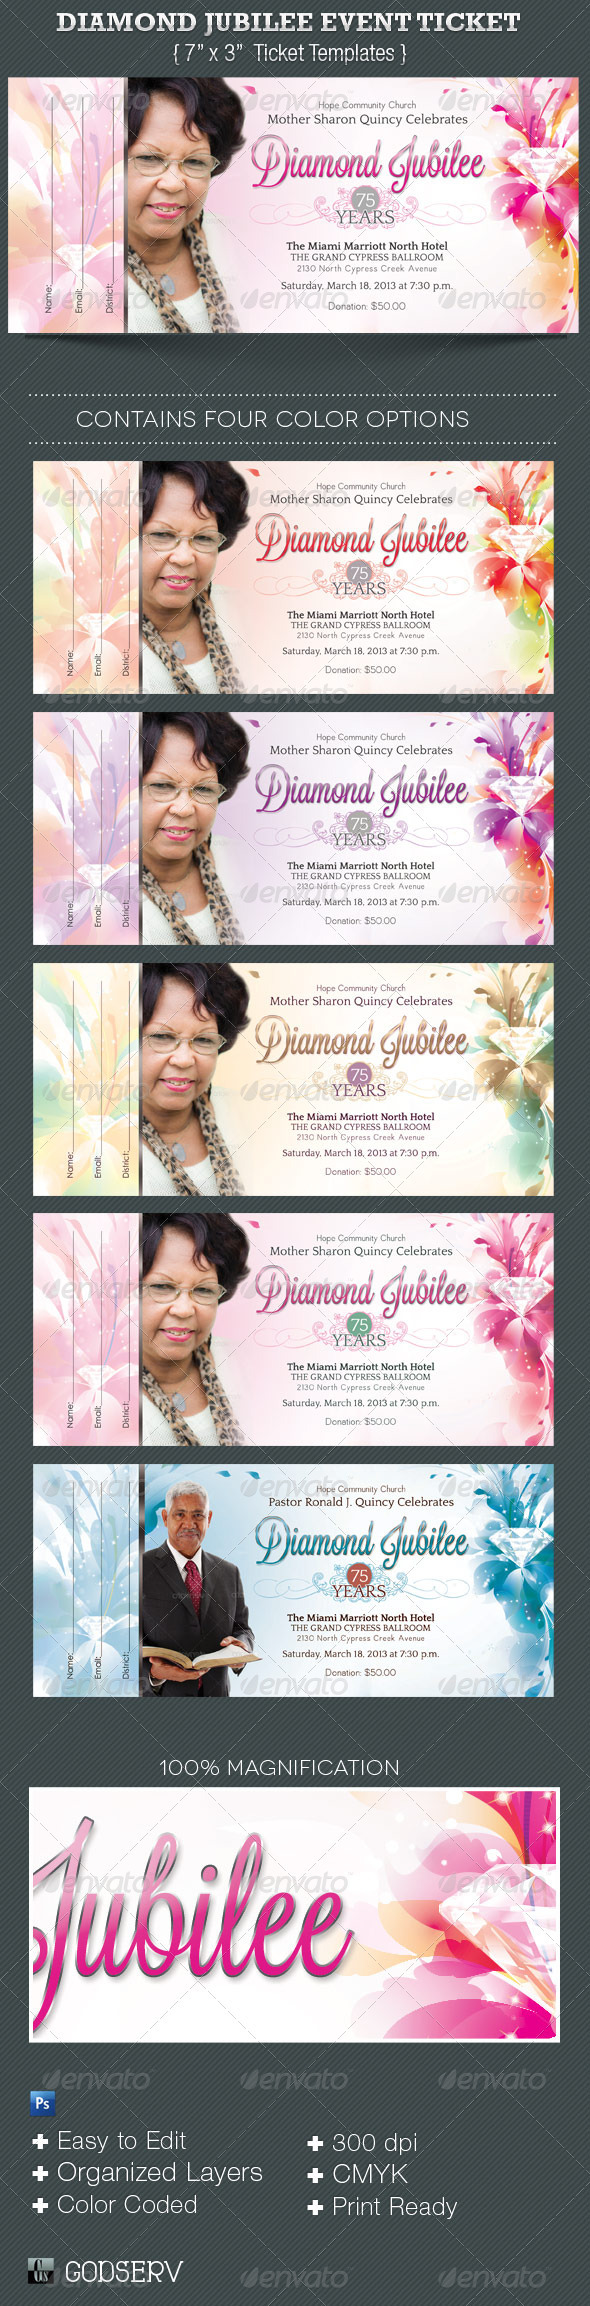 Diamond Jubilee Event Ticket Template - Miscellaneous Print Templates